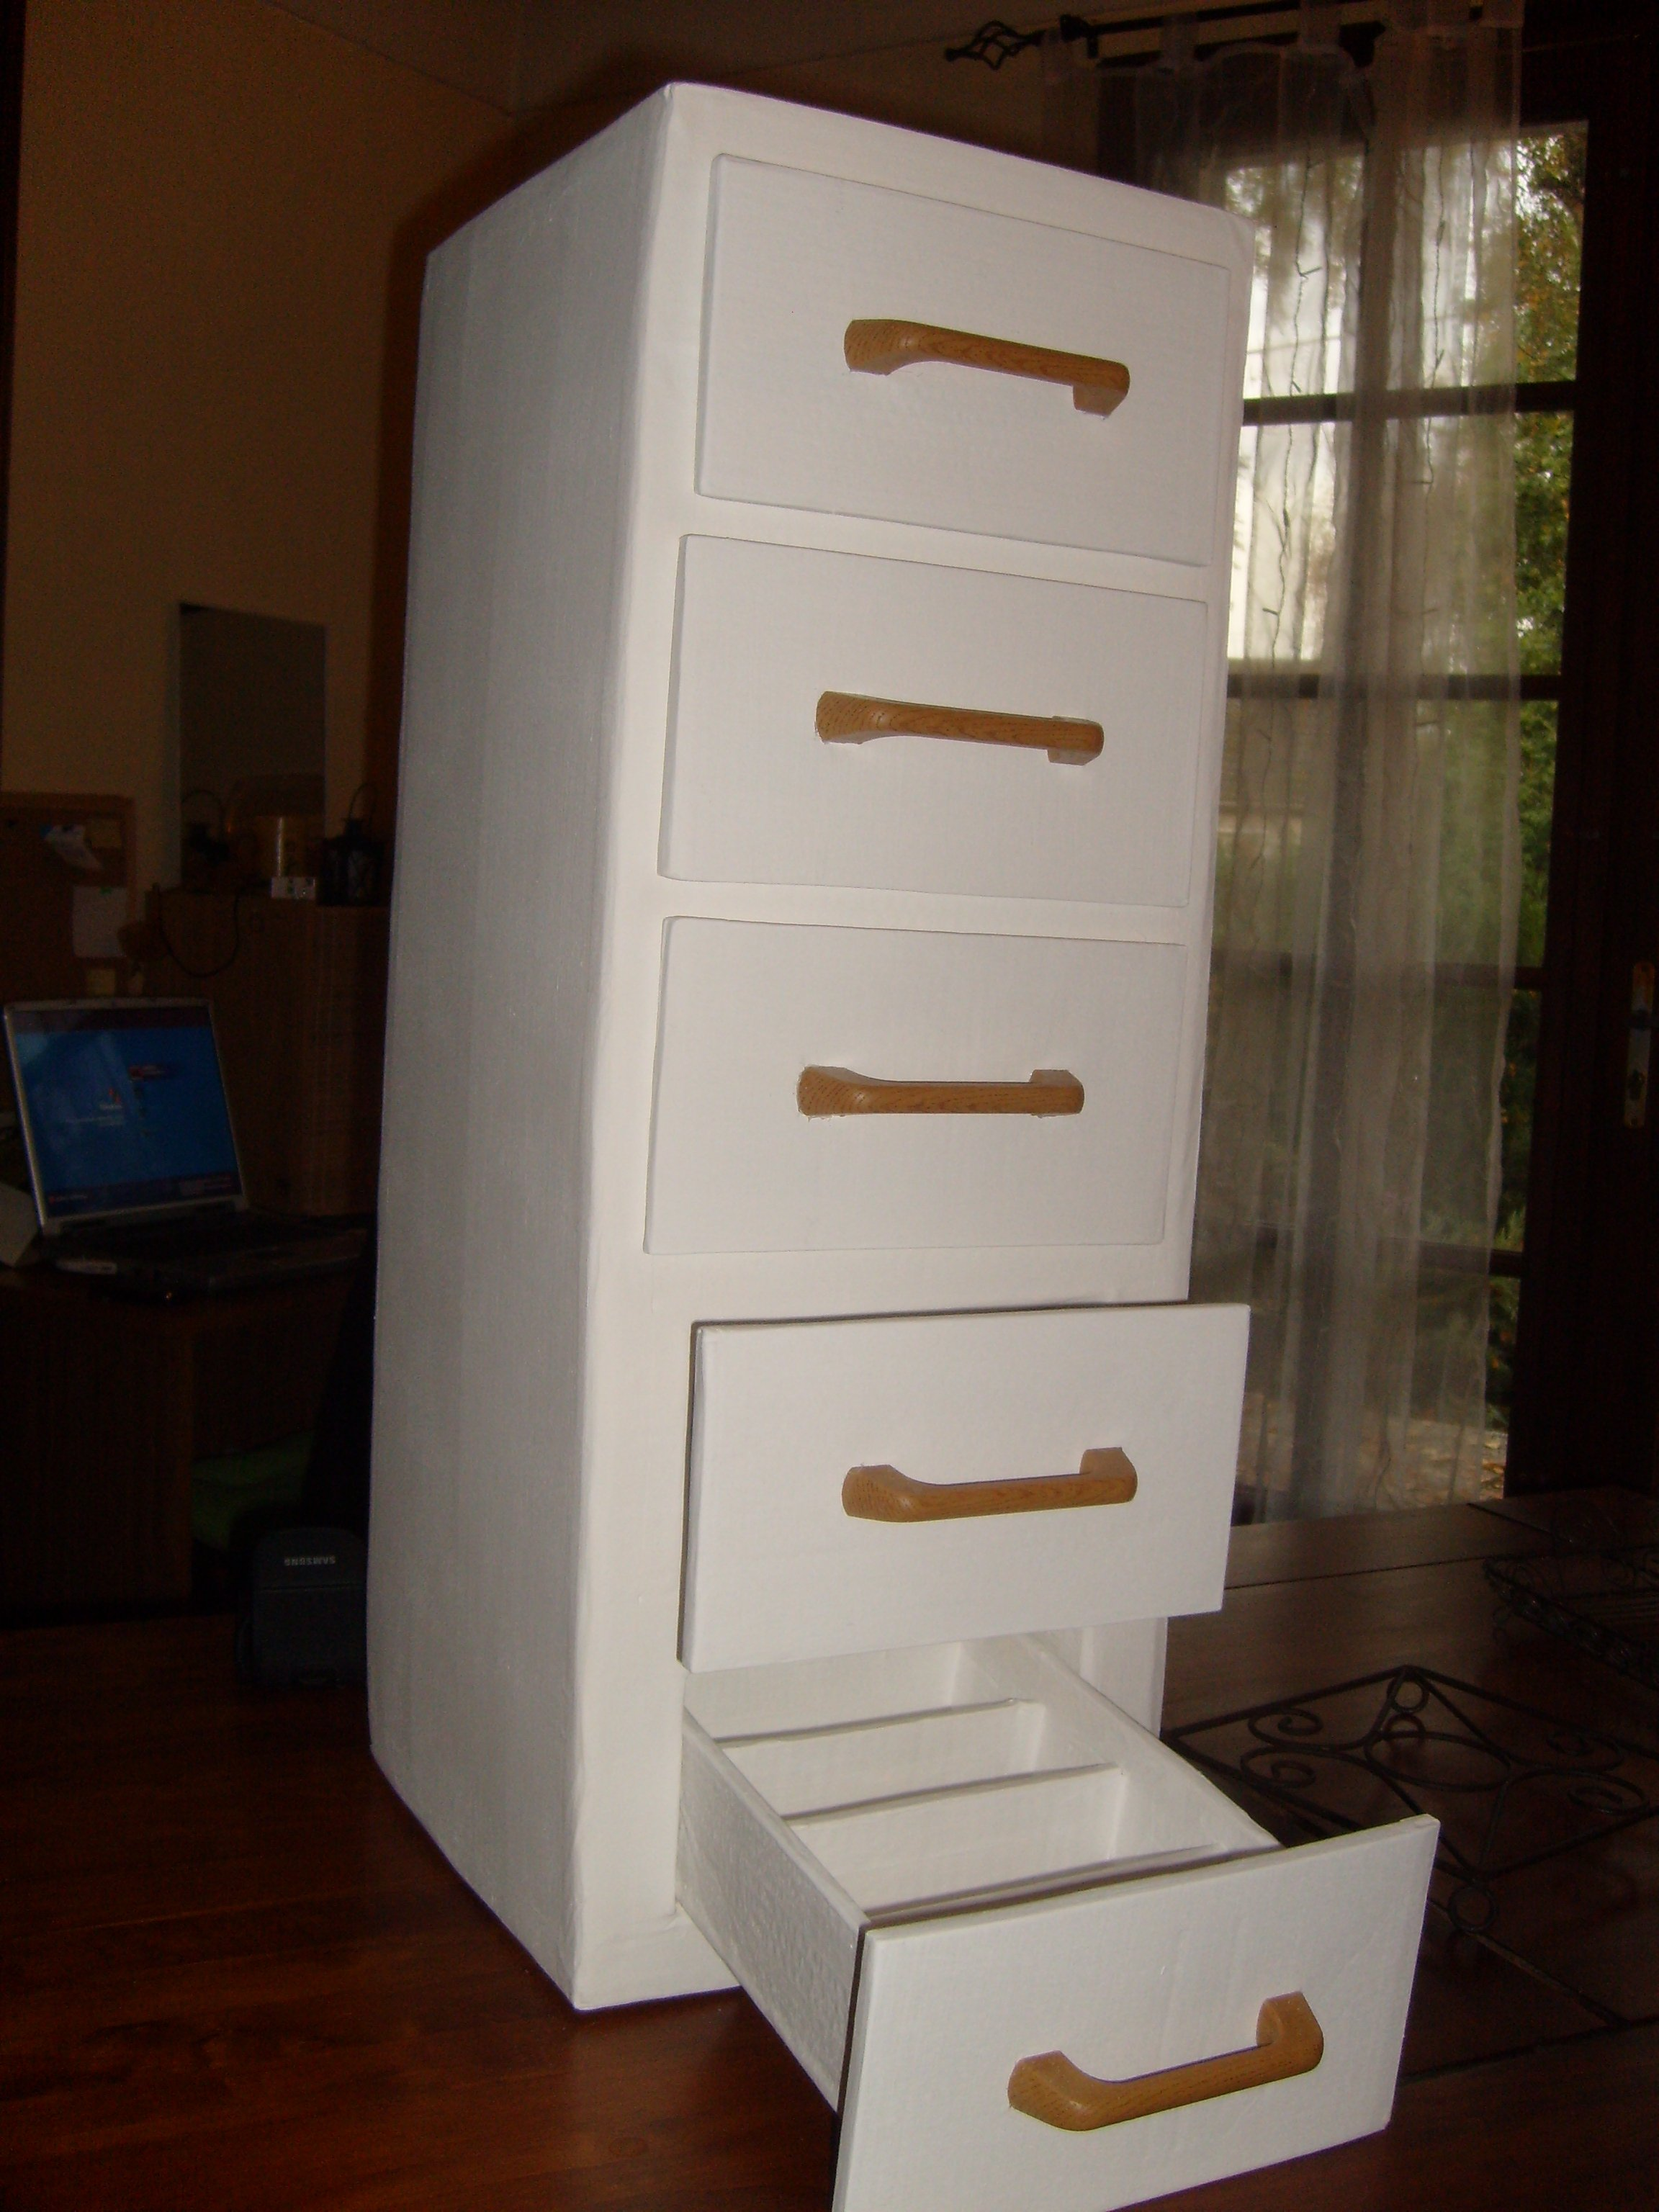 le meuble range couverts cr ativit c carton. Black Bedroom Furniture Sets. Home Design Ideas